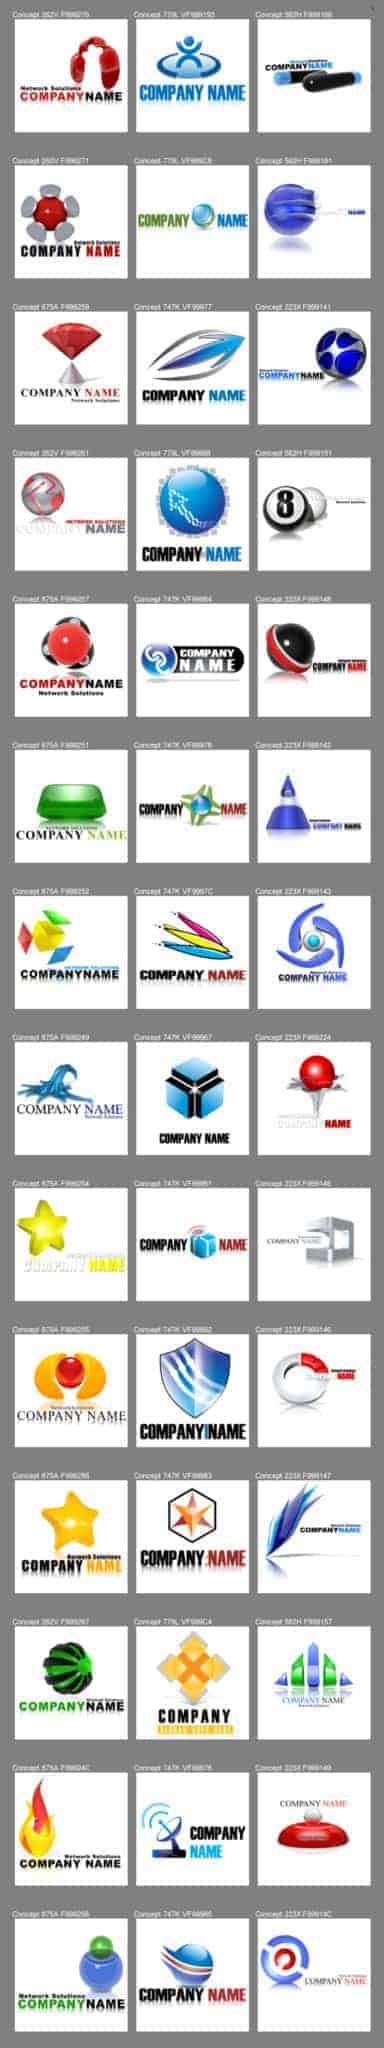 when designing a logo what elements make a great brand logo